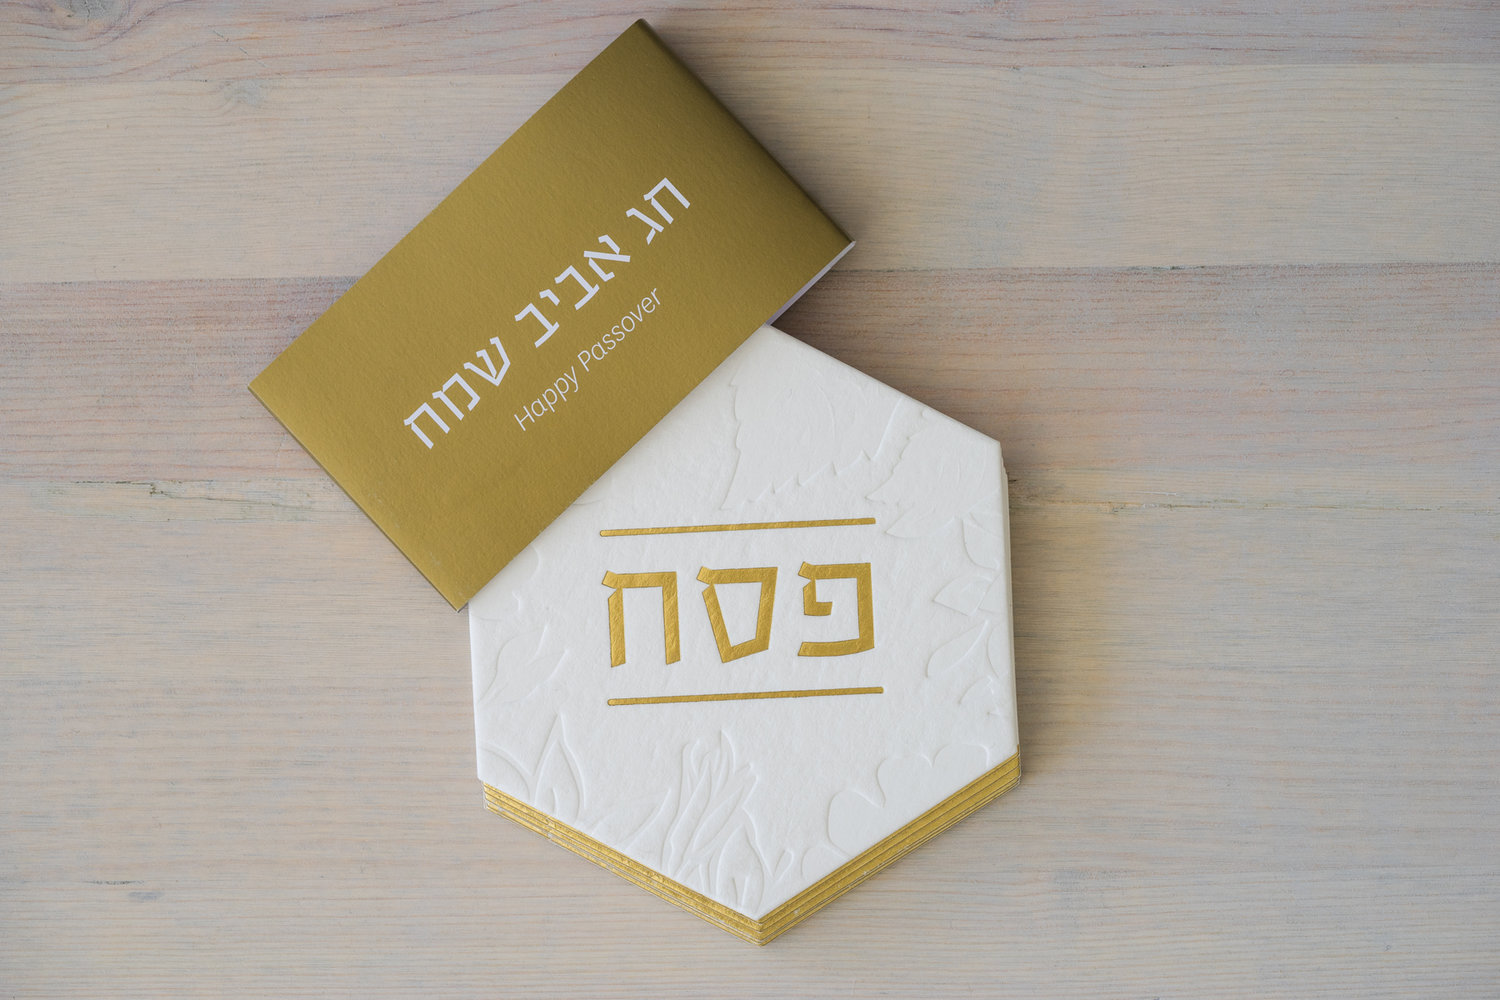 The problem with most seder plates is that they're heavy. Or expensive. Or heavy and expensive. With this gorgeous take created by artist Chen Blume, you can turn any tabletop, cutting board, or iPad into your seder plate this Passover.